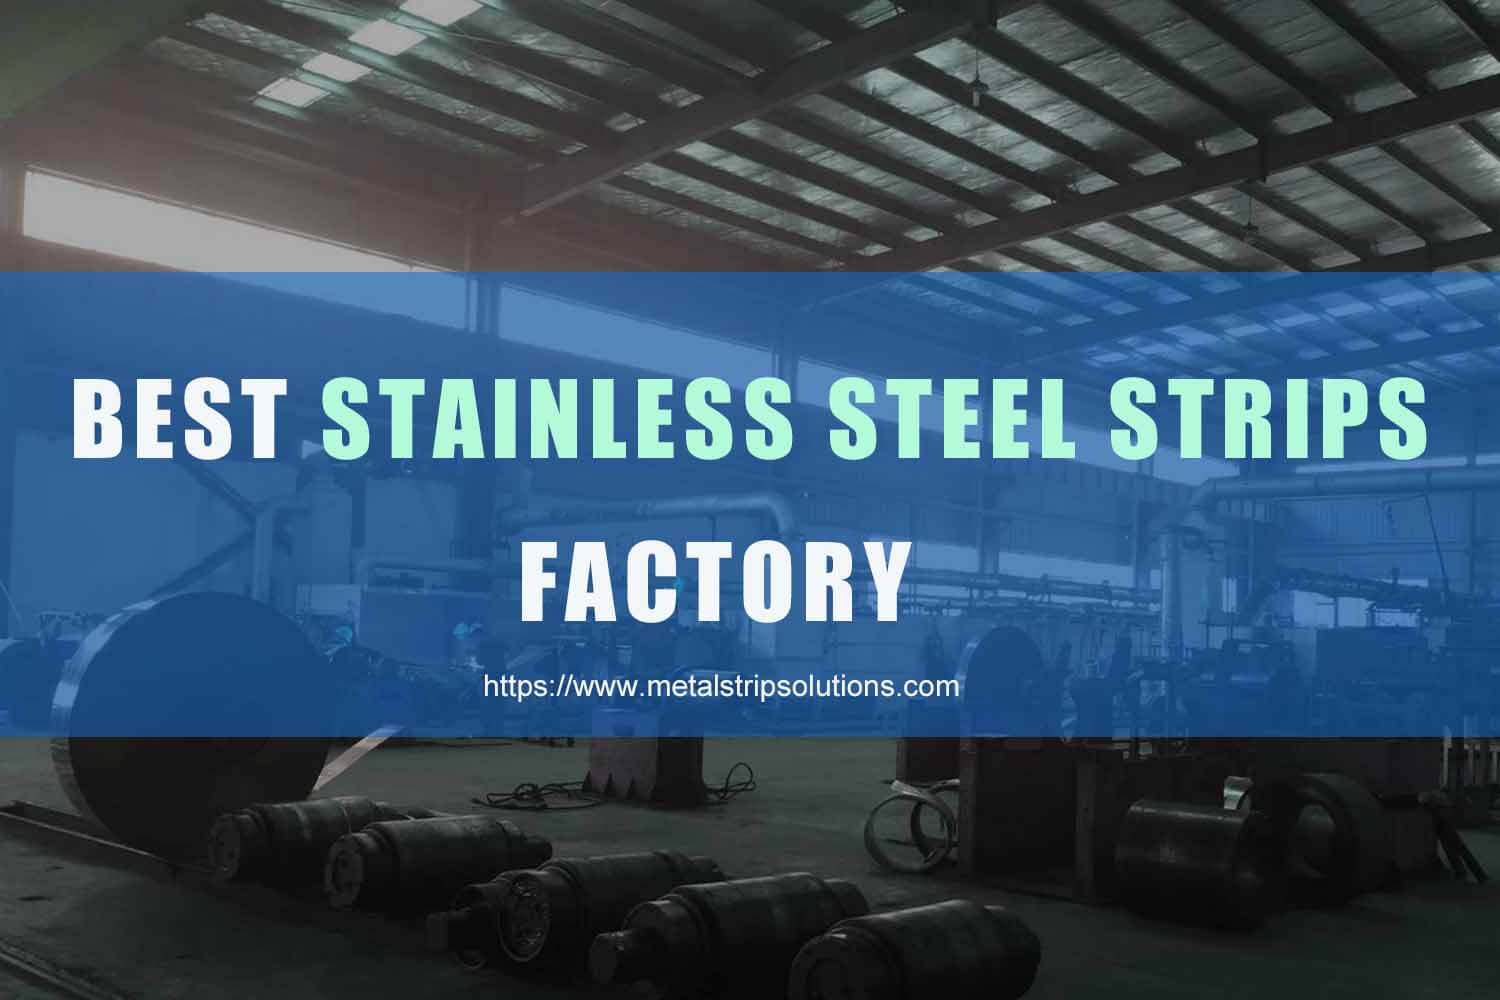 stainless-steel-strips-factory